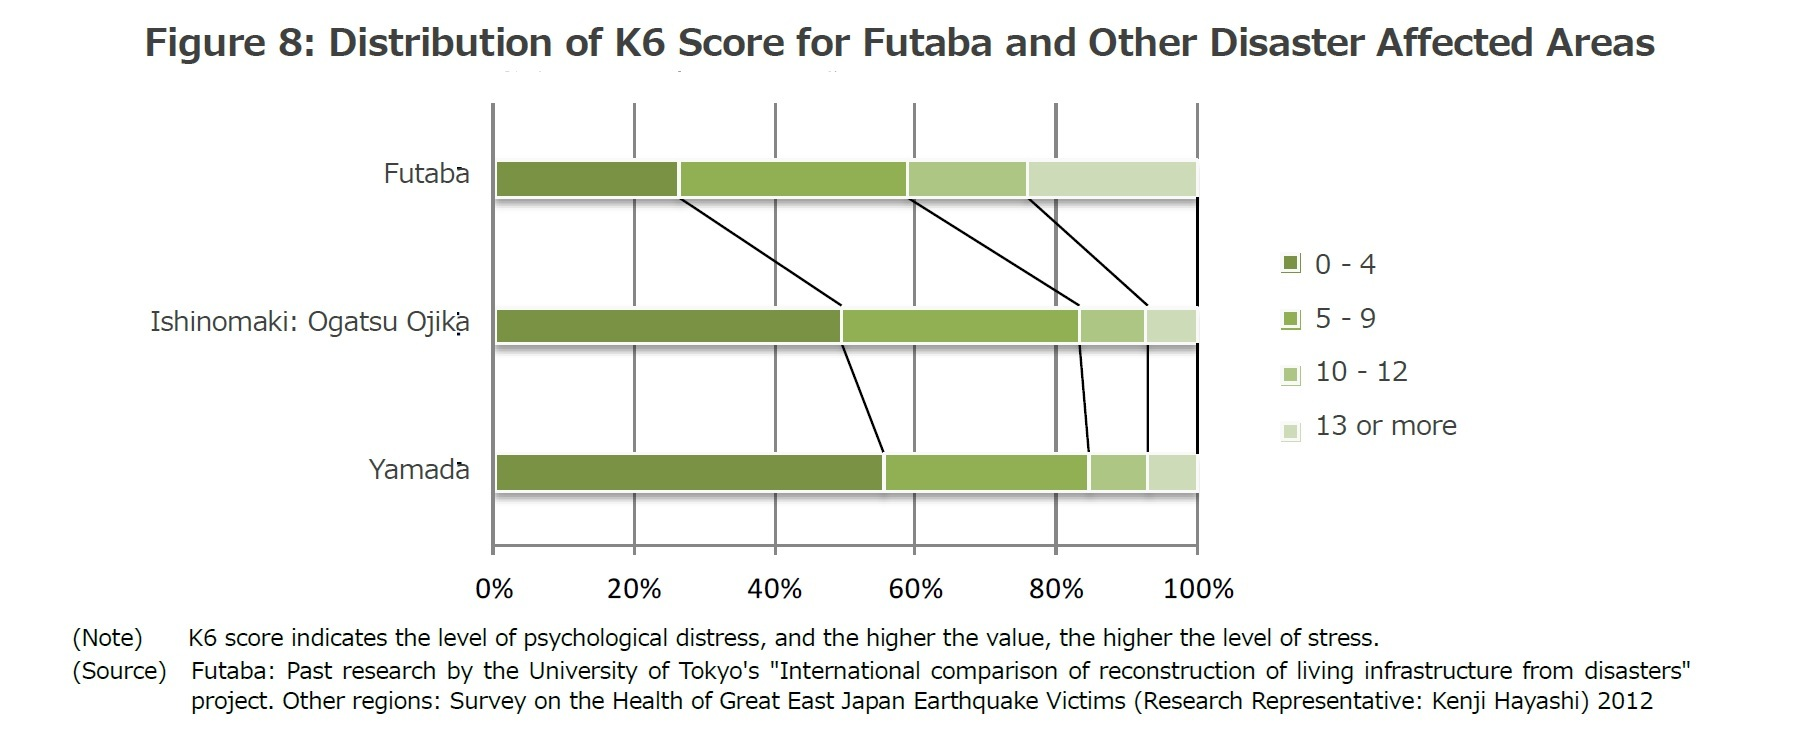 Figure 8: Distribution of K6 Score for Futaba and Other Disaster Affected Areas